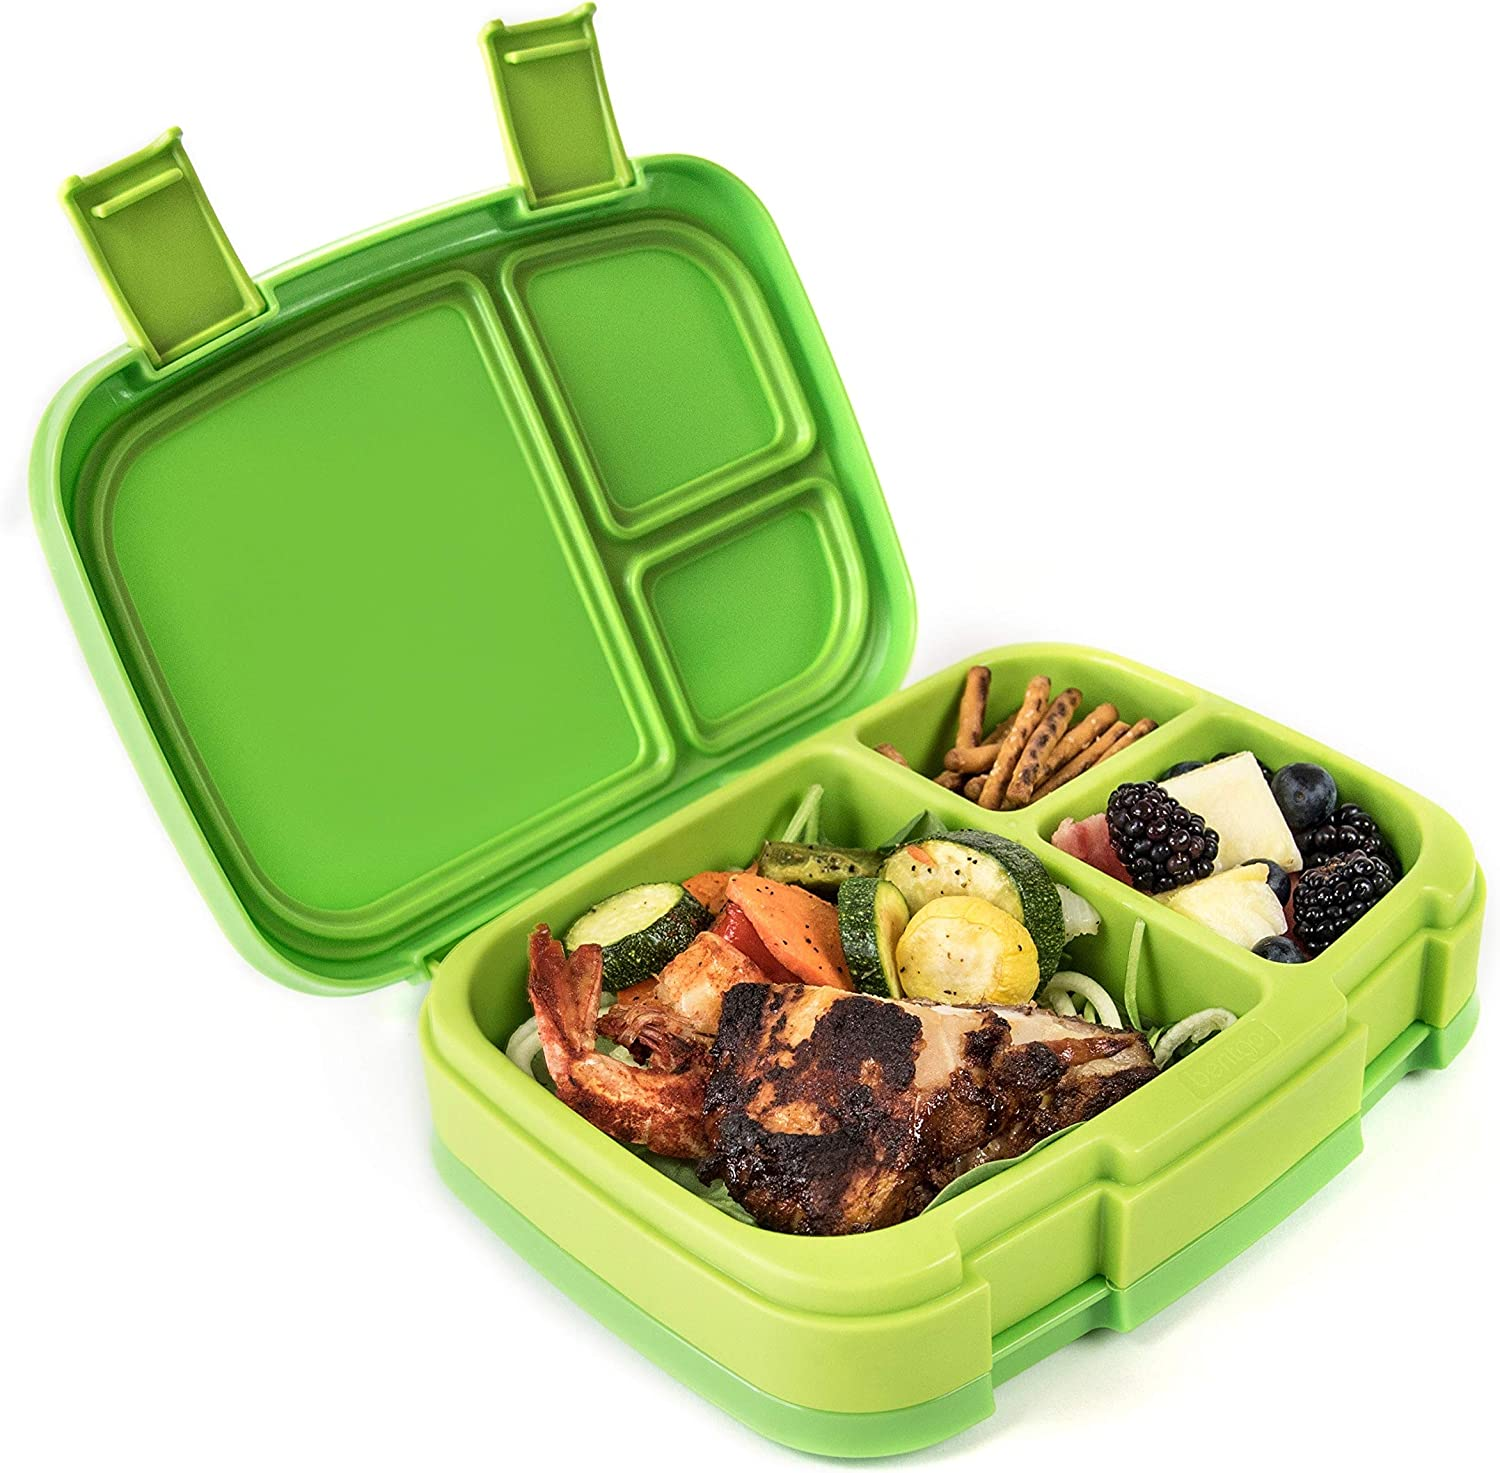 Bentgo Fresh (Green) – Leak-Proof & Versatile 4-Compartment Bento-Style Lunch Box – Ideal for Portion-Control and Balanced Eating On-the-Go – BPA-Free and Food-Safe Materials